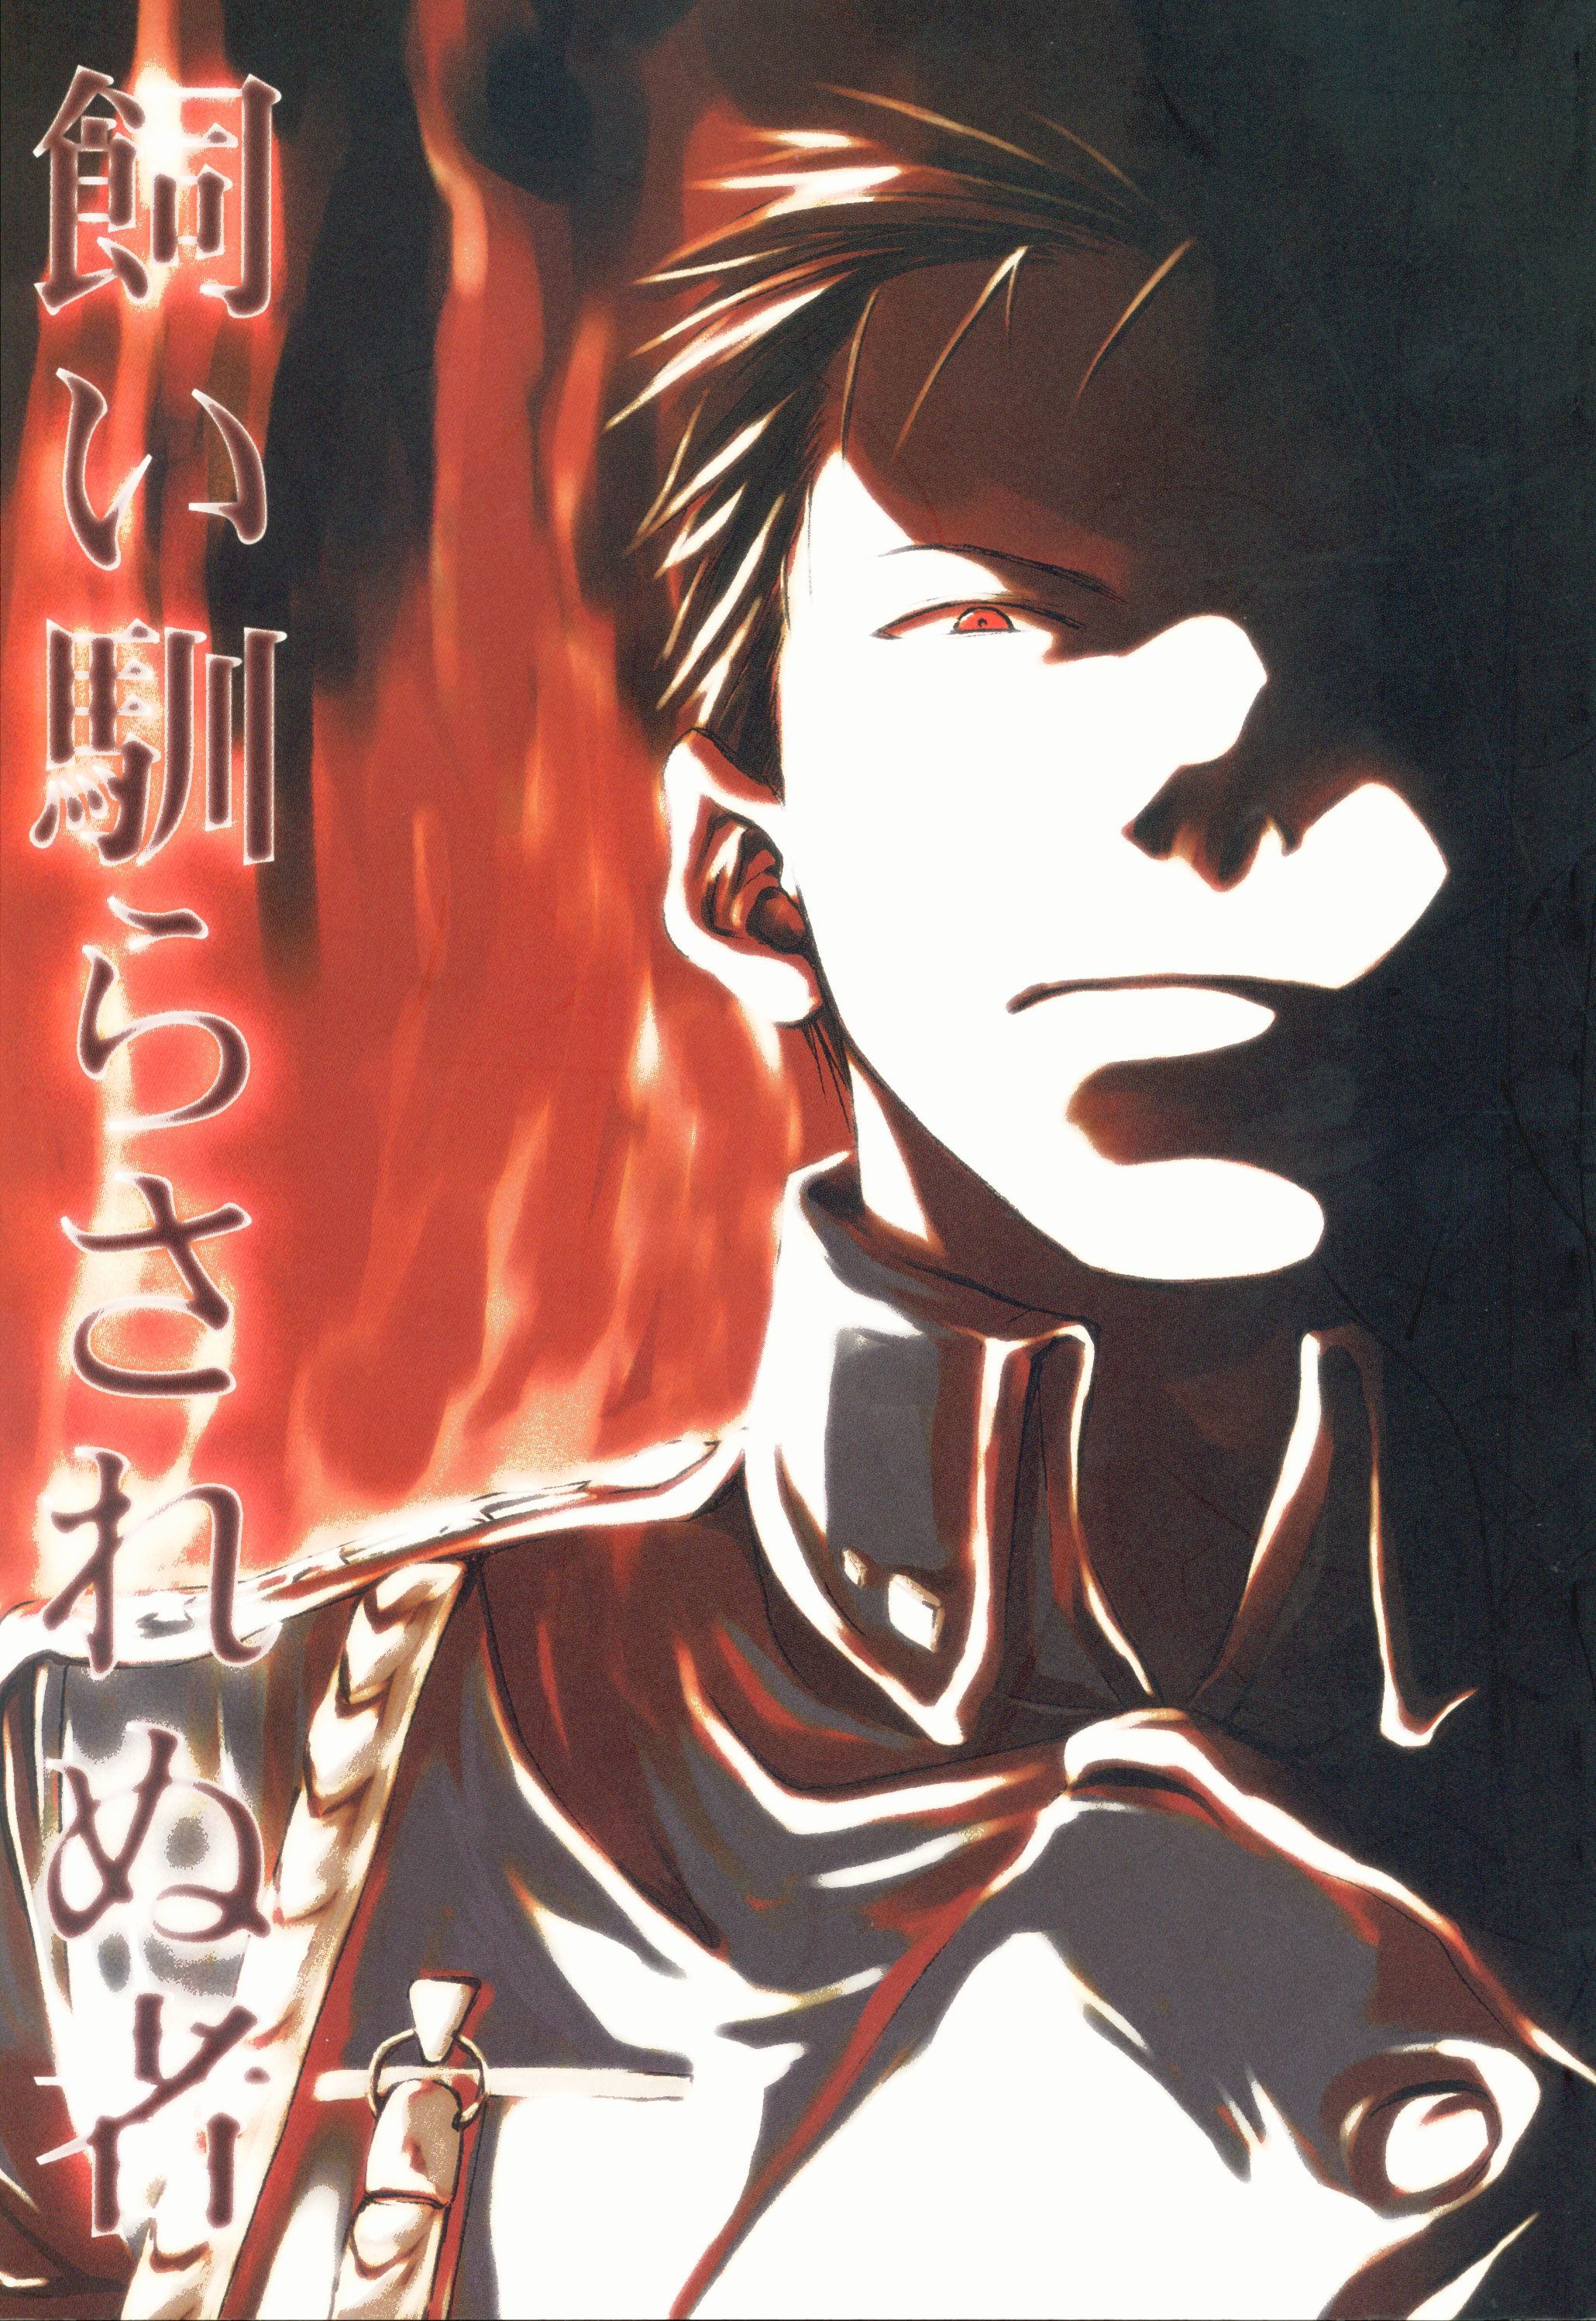 Doujinshi - Fullmetal Alchemist / Roy Mustang (飼い馴らされぬ者) / Crazy9